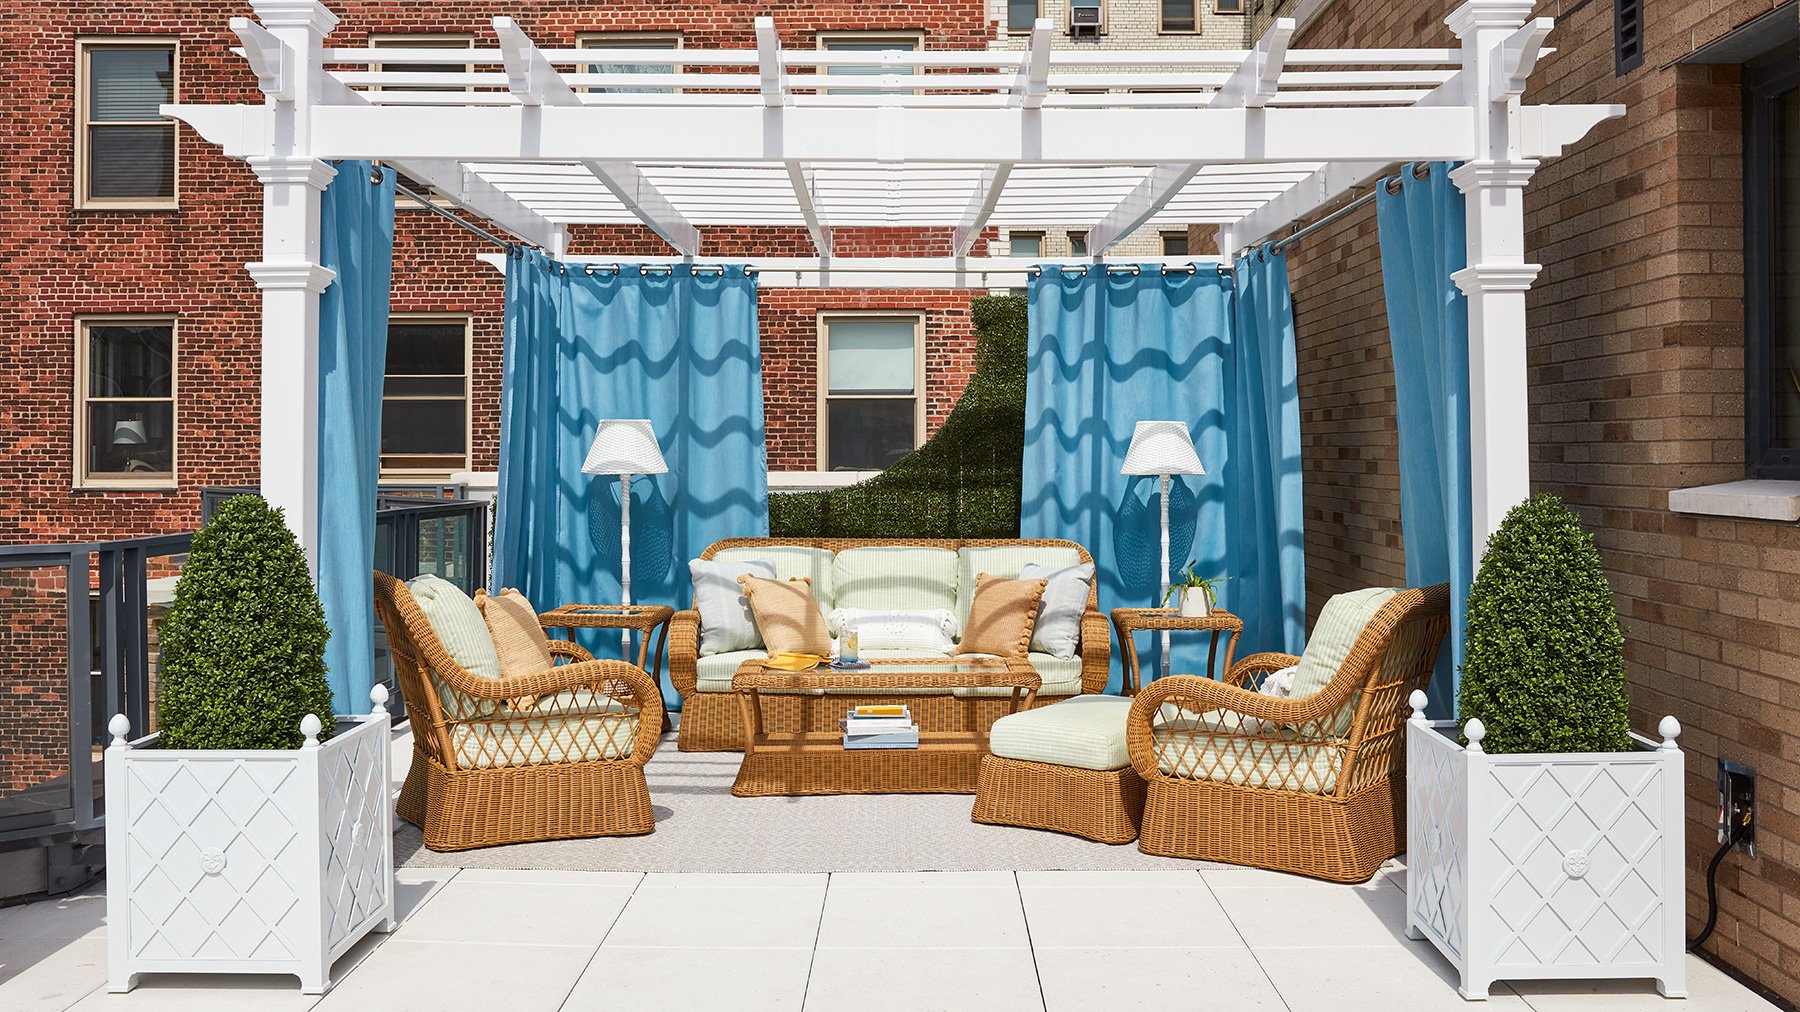 2020 Real Simple Home Tour: Terrace